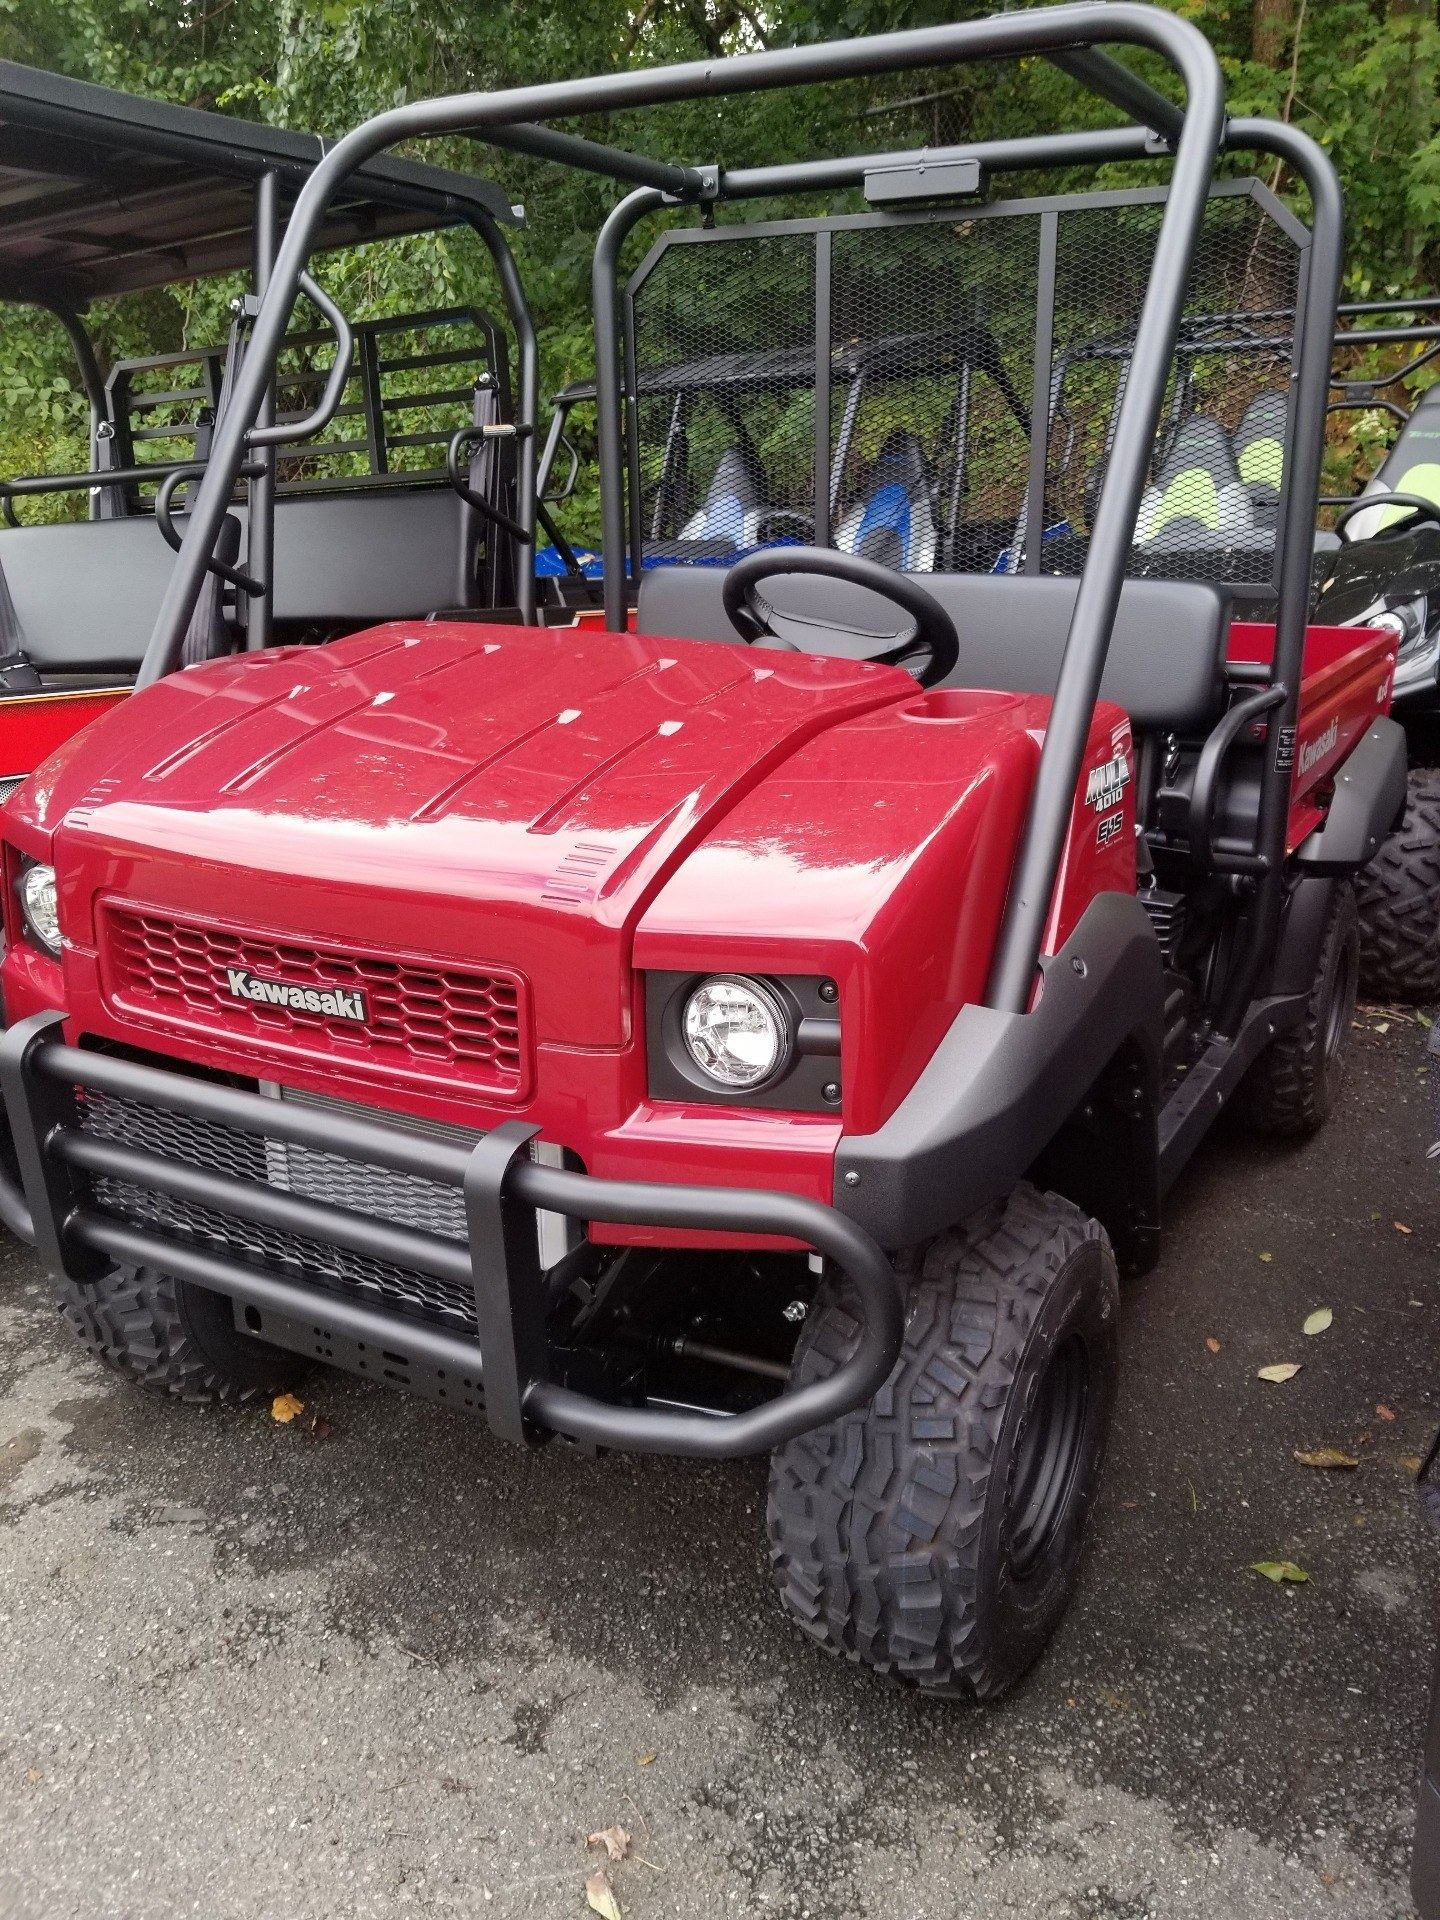 2019 Kawasaki Mule 4010 4x4 for sale 5382